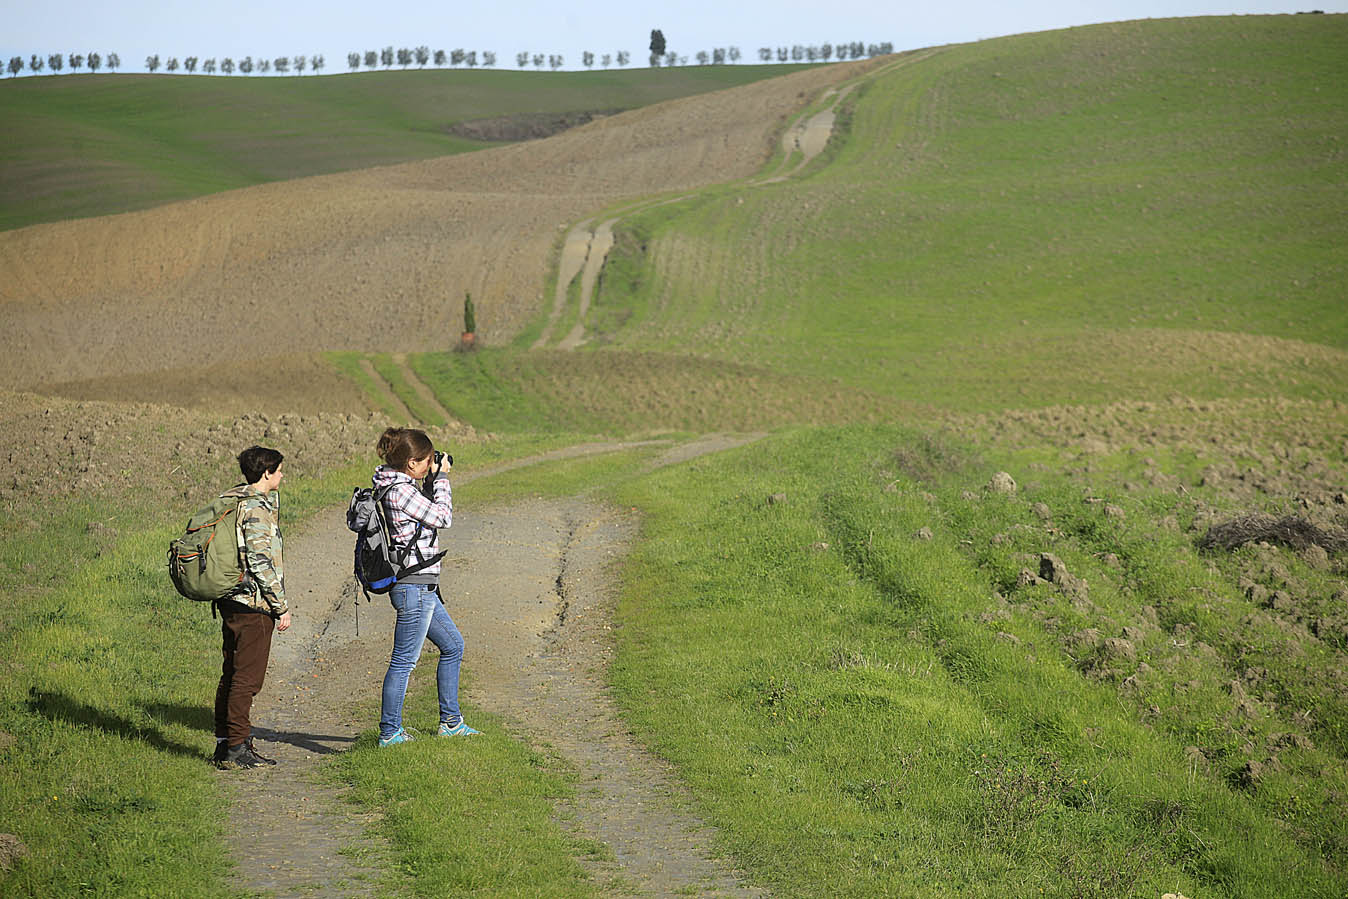 Tuscany, via Francigena, view, photo by Enrico Caracciolo, all rights reserved